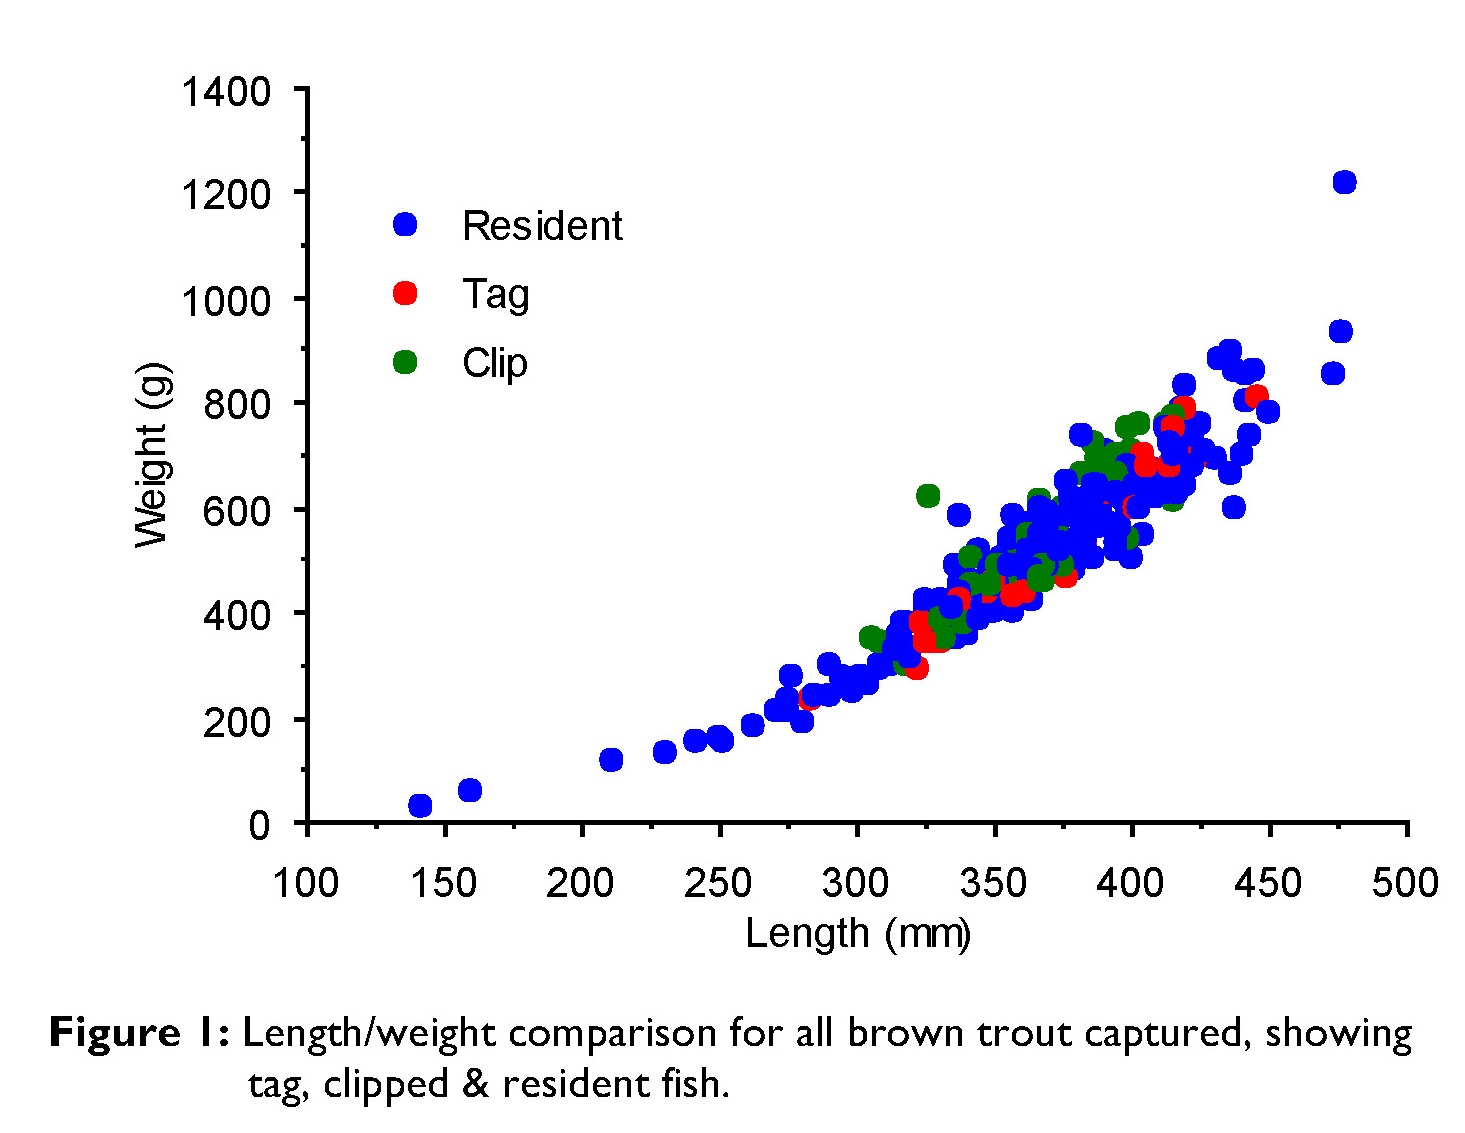 Length/weight comparison for all brown trout captured, showing tag, clipped & resident fish.